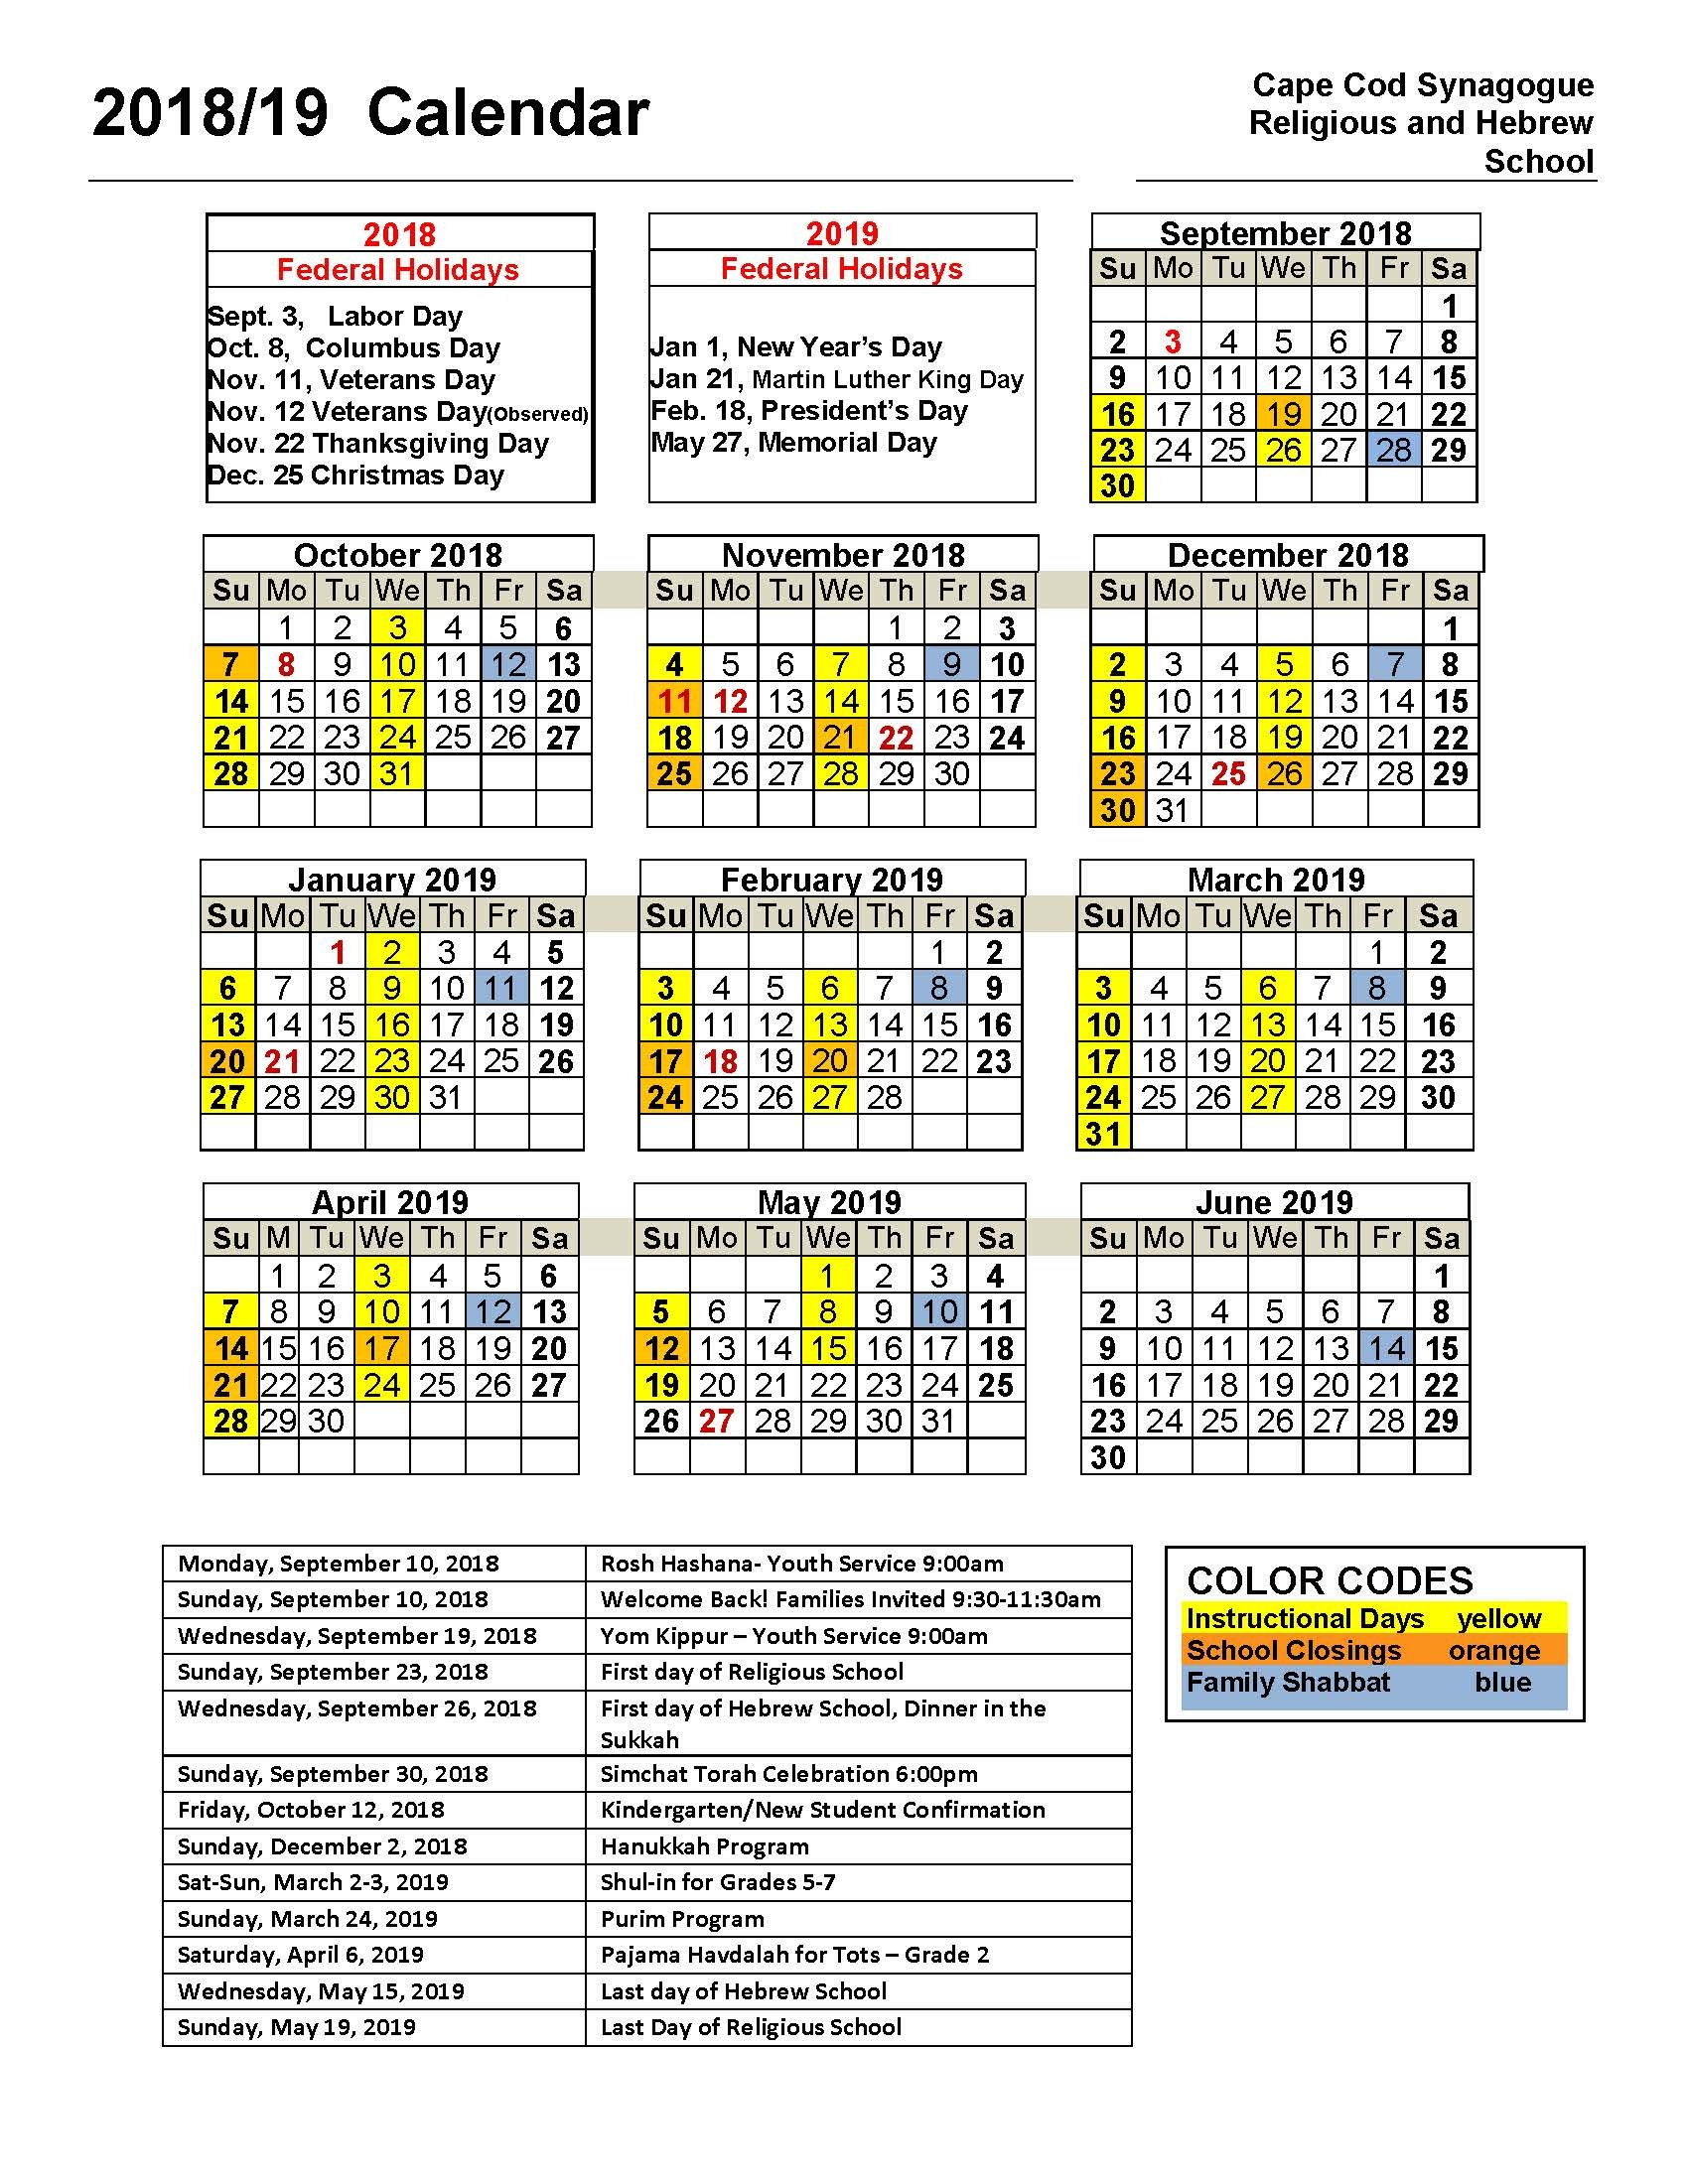 Religious And Hebrew School Calendar – Cape Cod Synagogue Calendar 2019 Martin Luther King